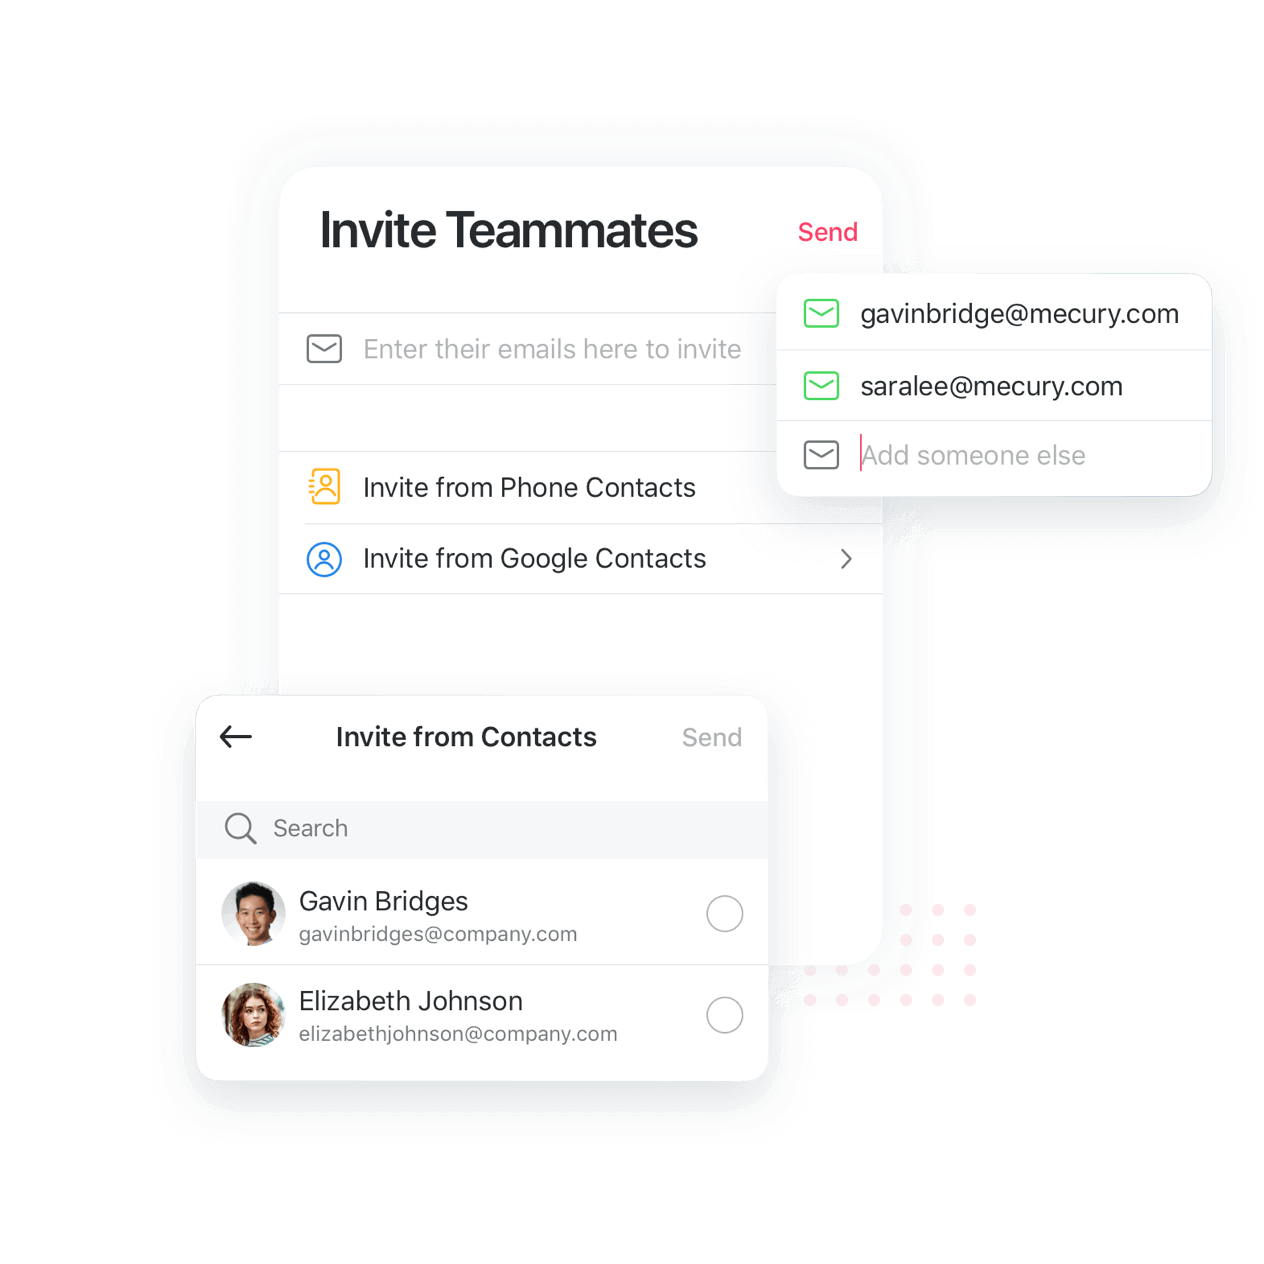 Start inviting your team members via their email address. Import them from your contacts or type them in.